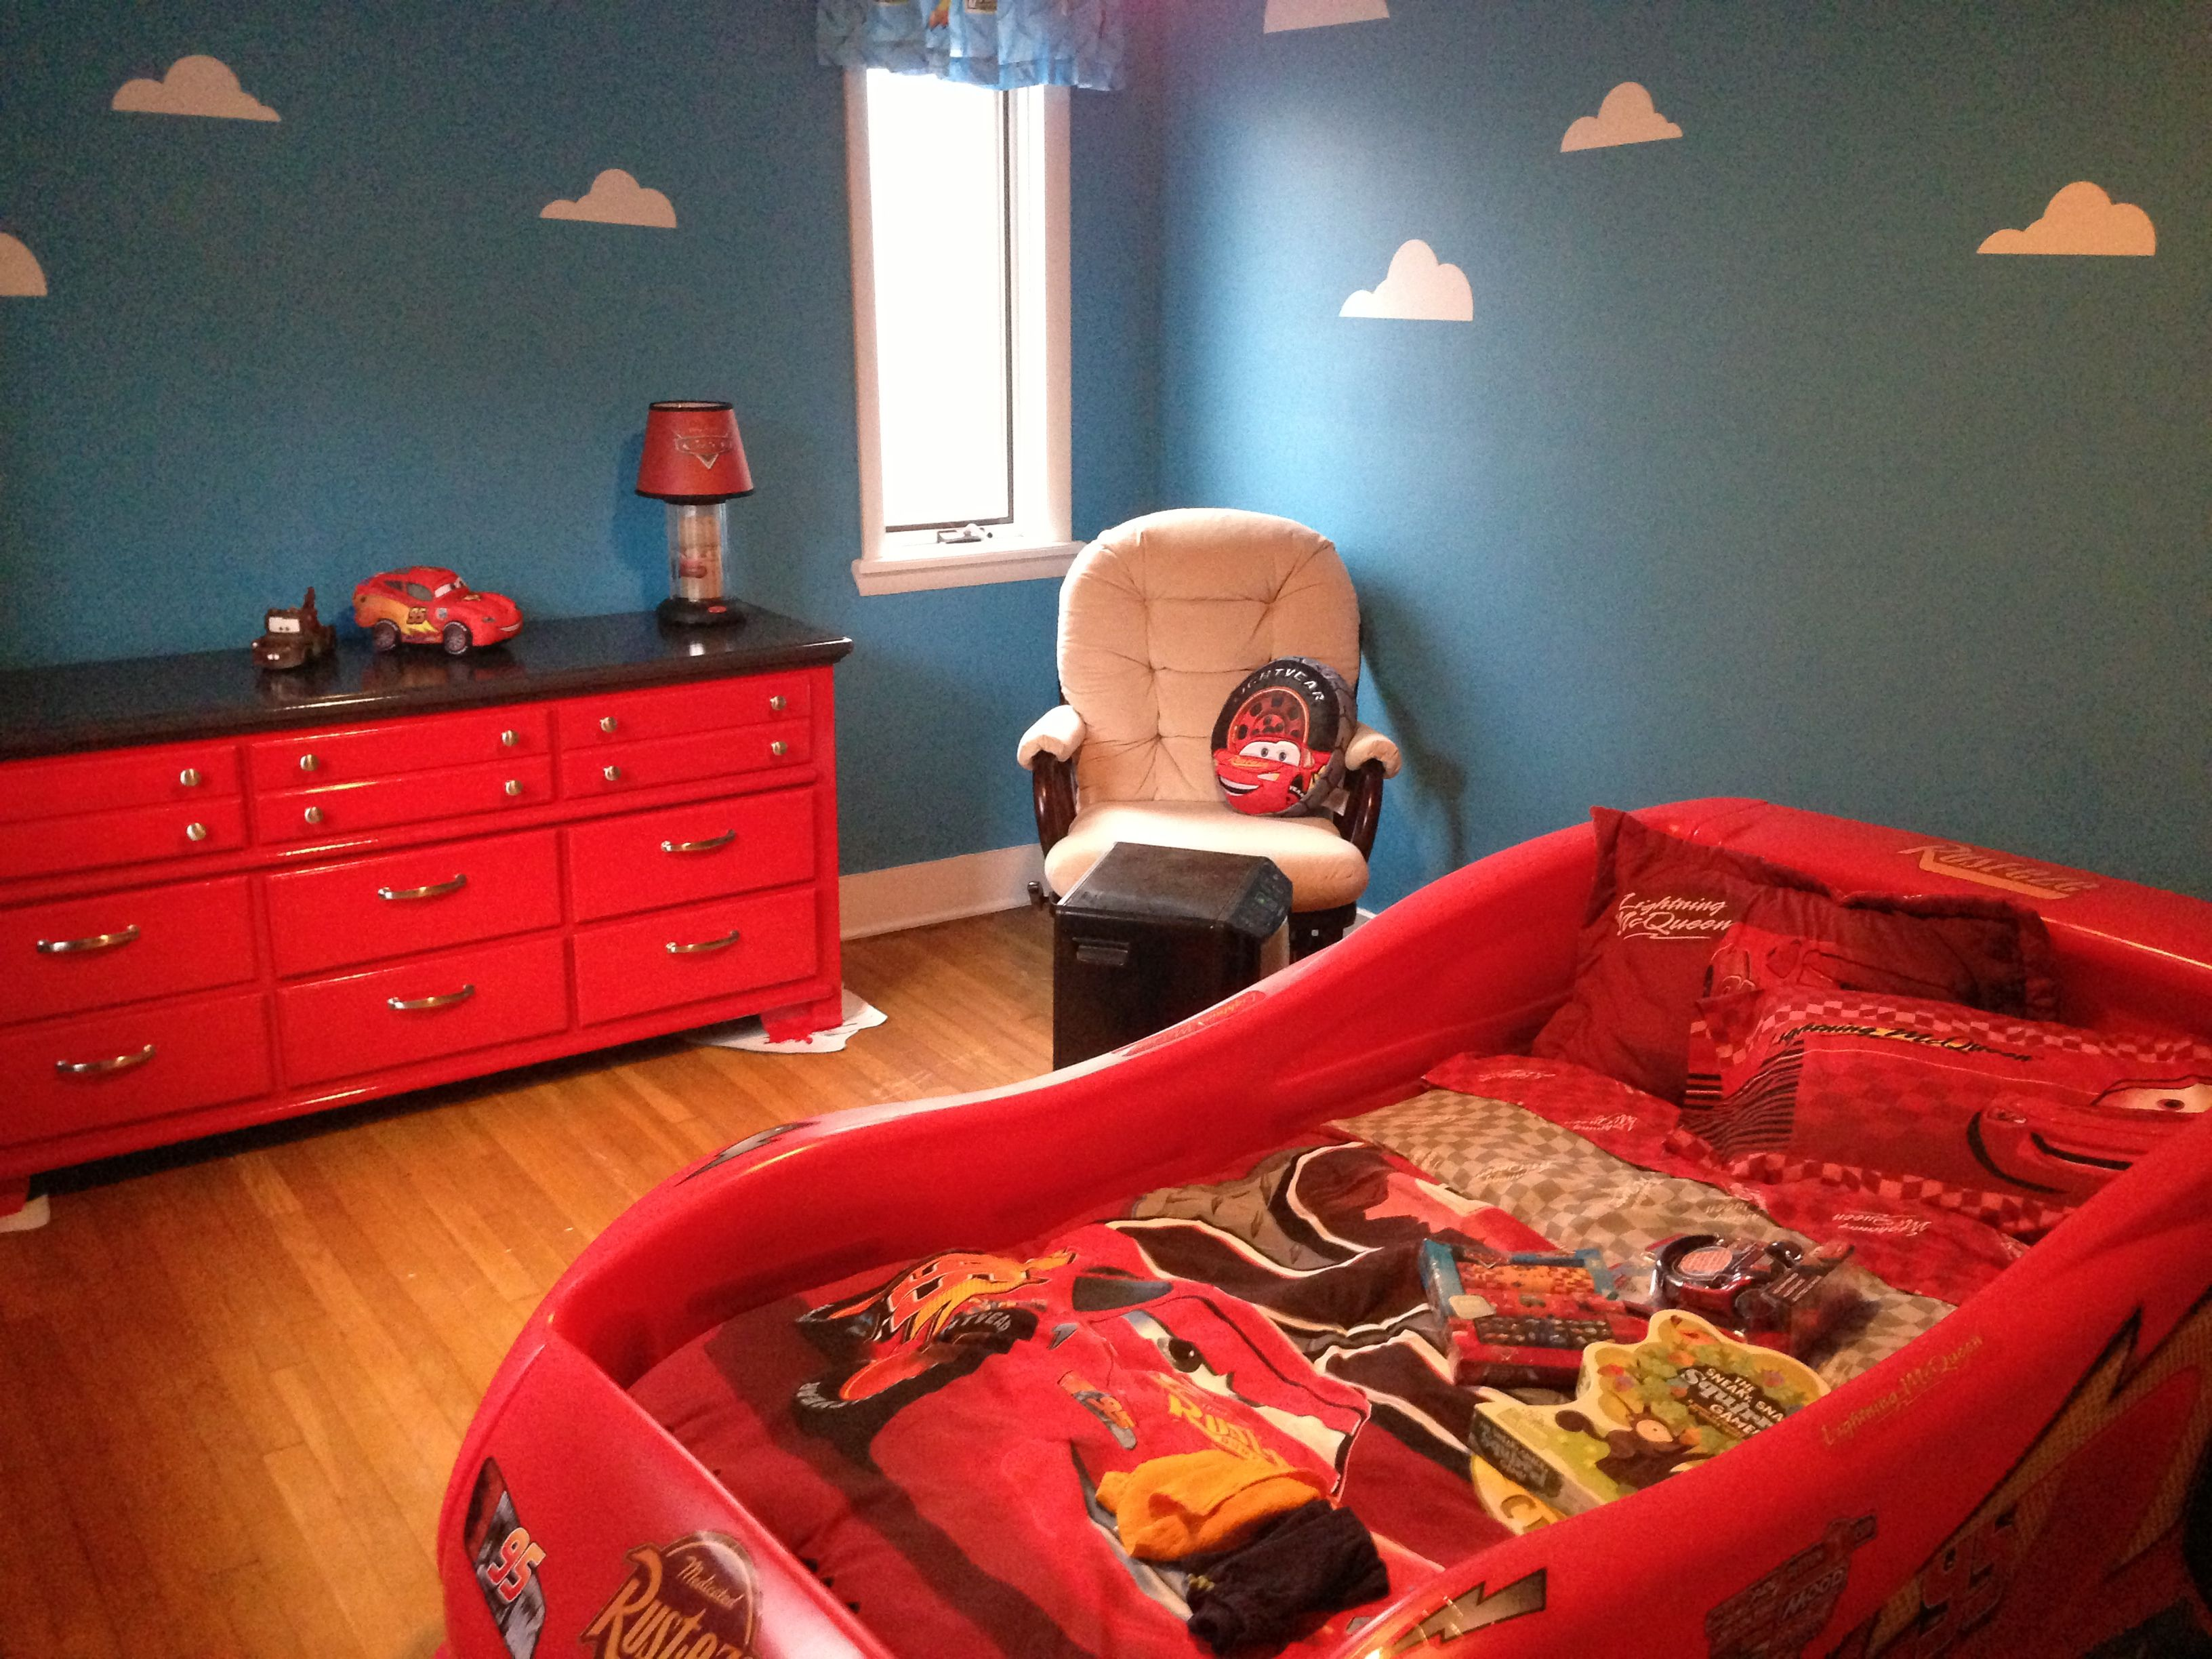 Boys car bedroom ideas - Can T Decide On Cars Vs Toy Story This Would Be A Cute Mix